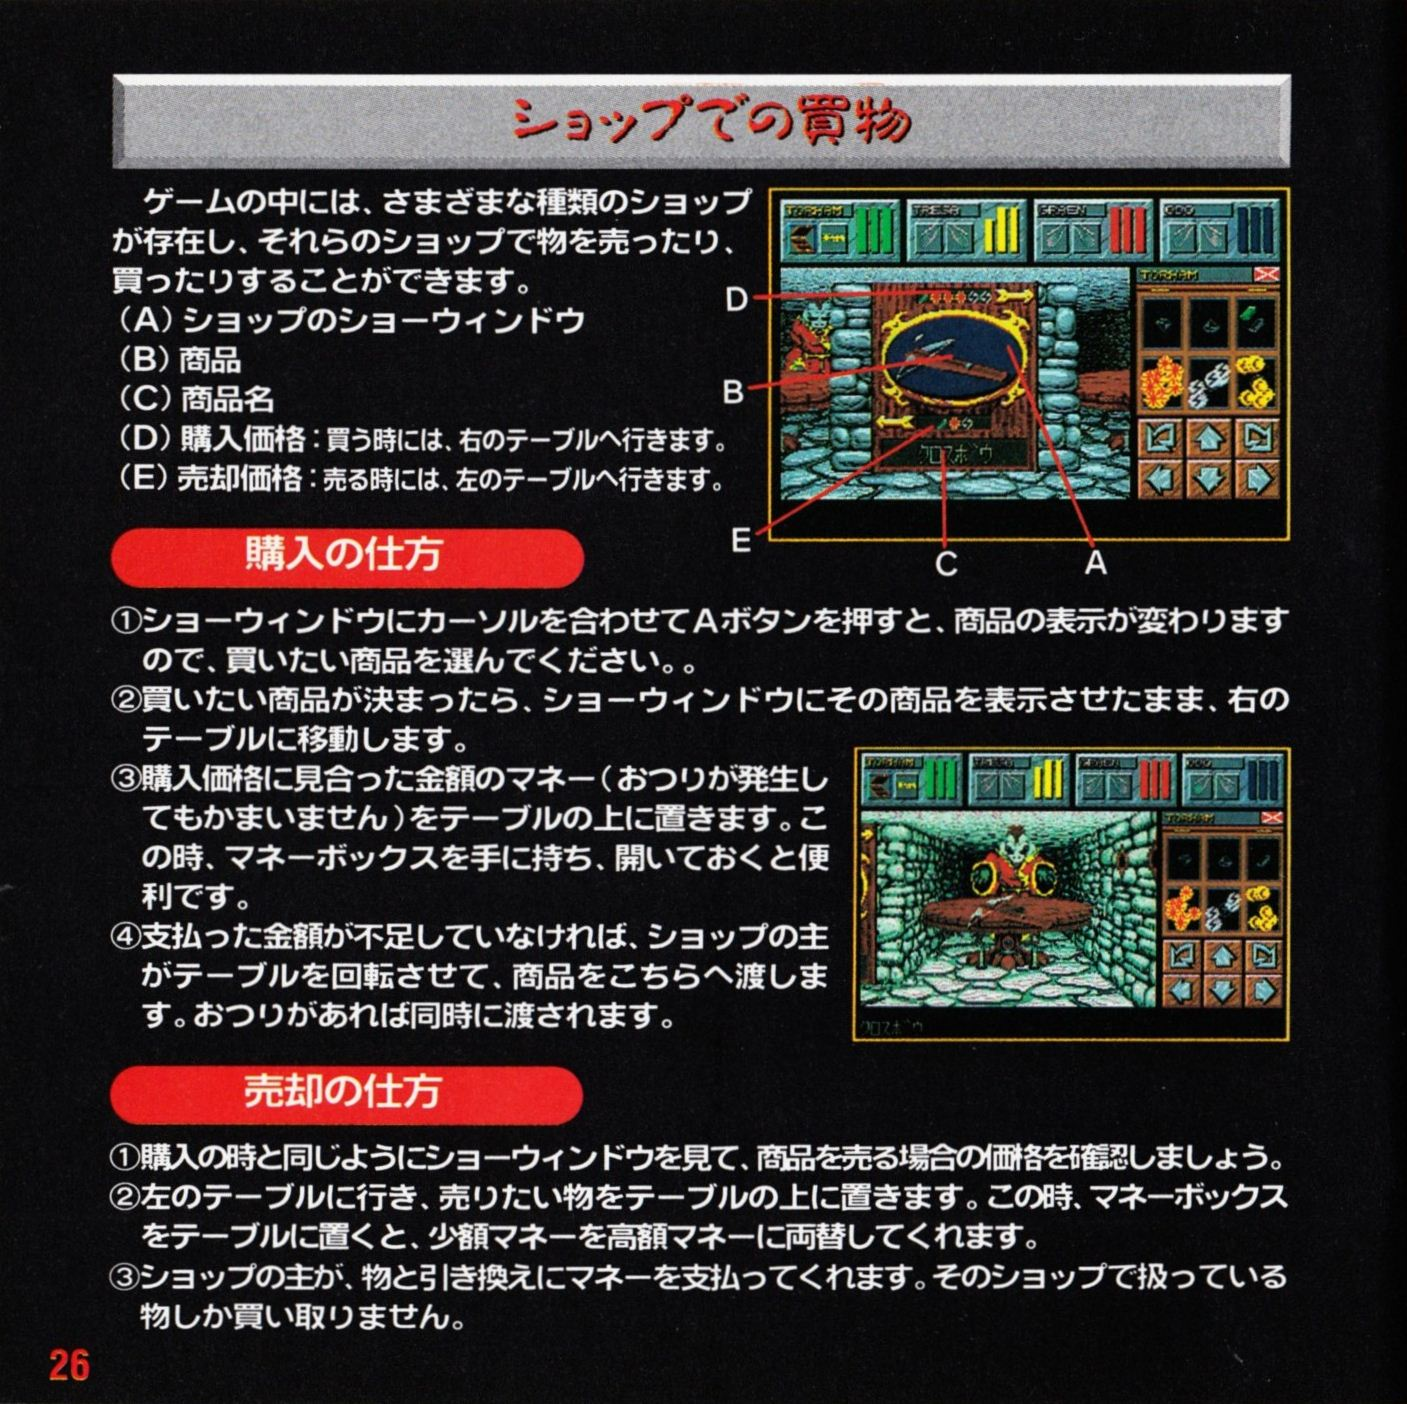 Game - Dungeon Master II - JP - Mega CD - Booklet - Page 028 - Scan